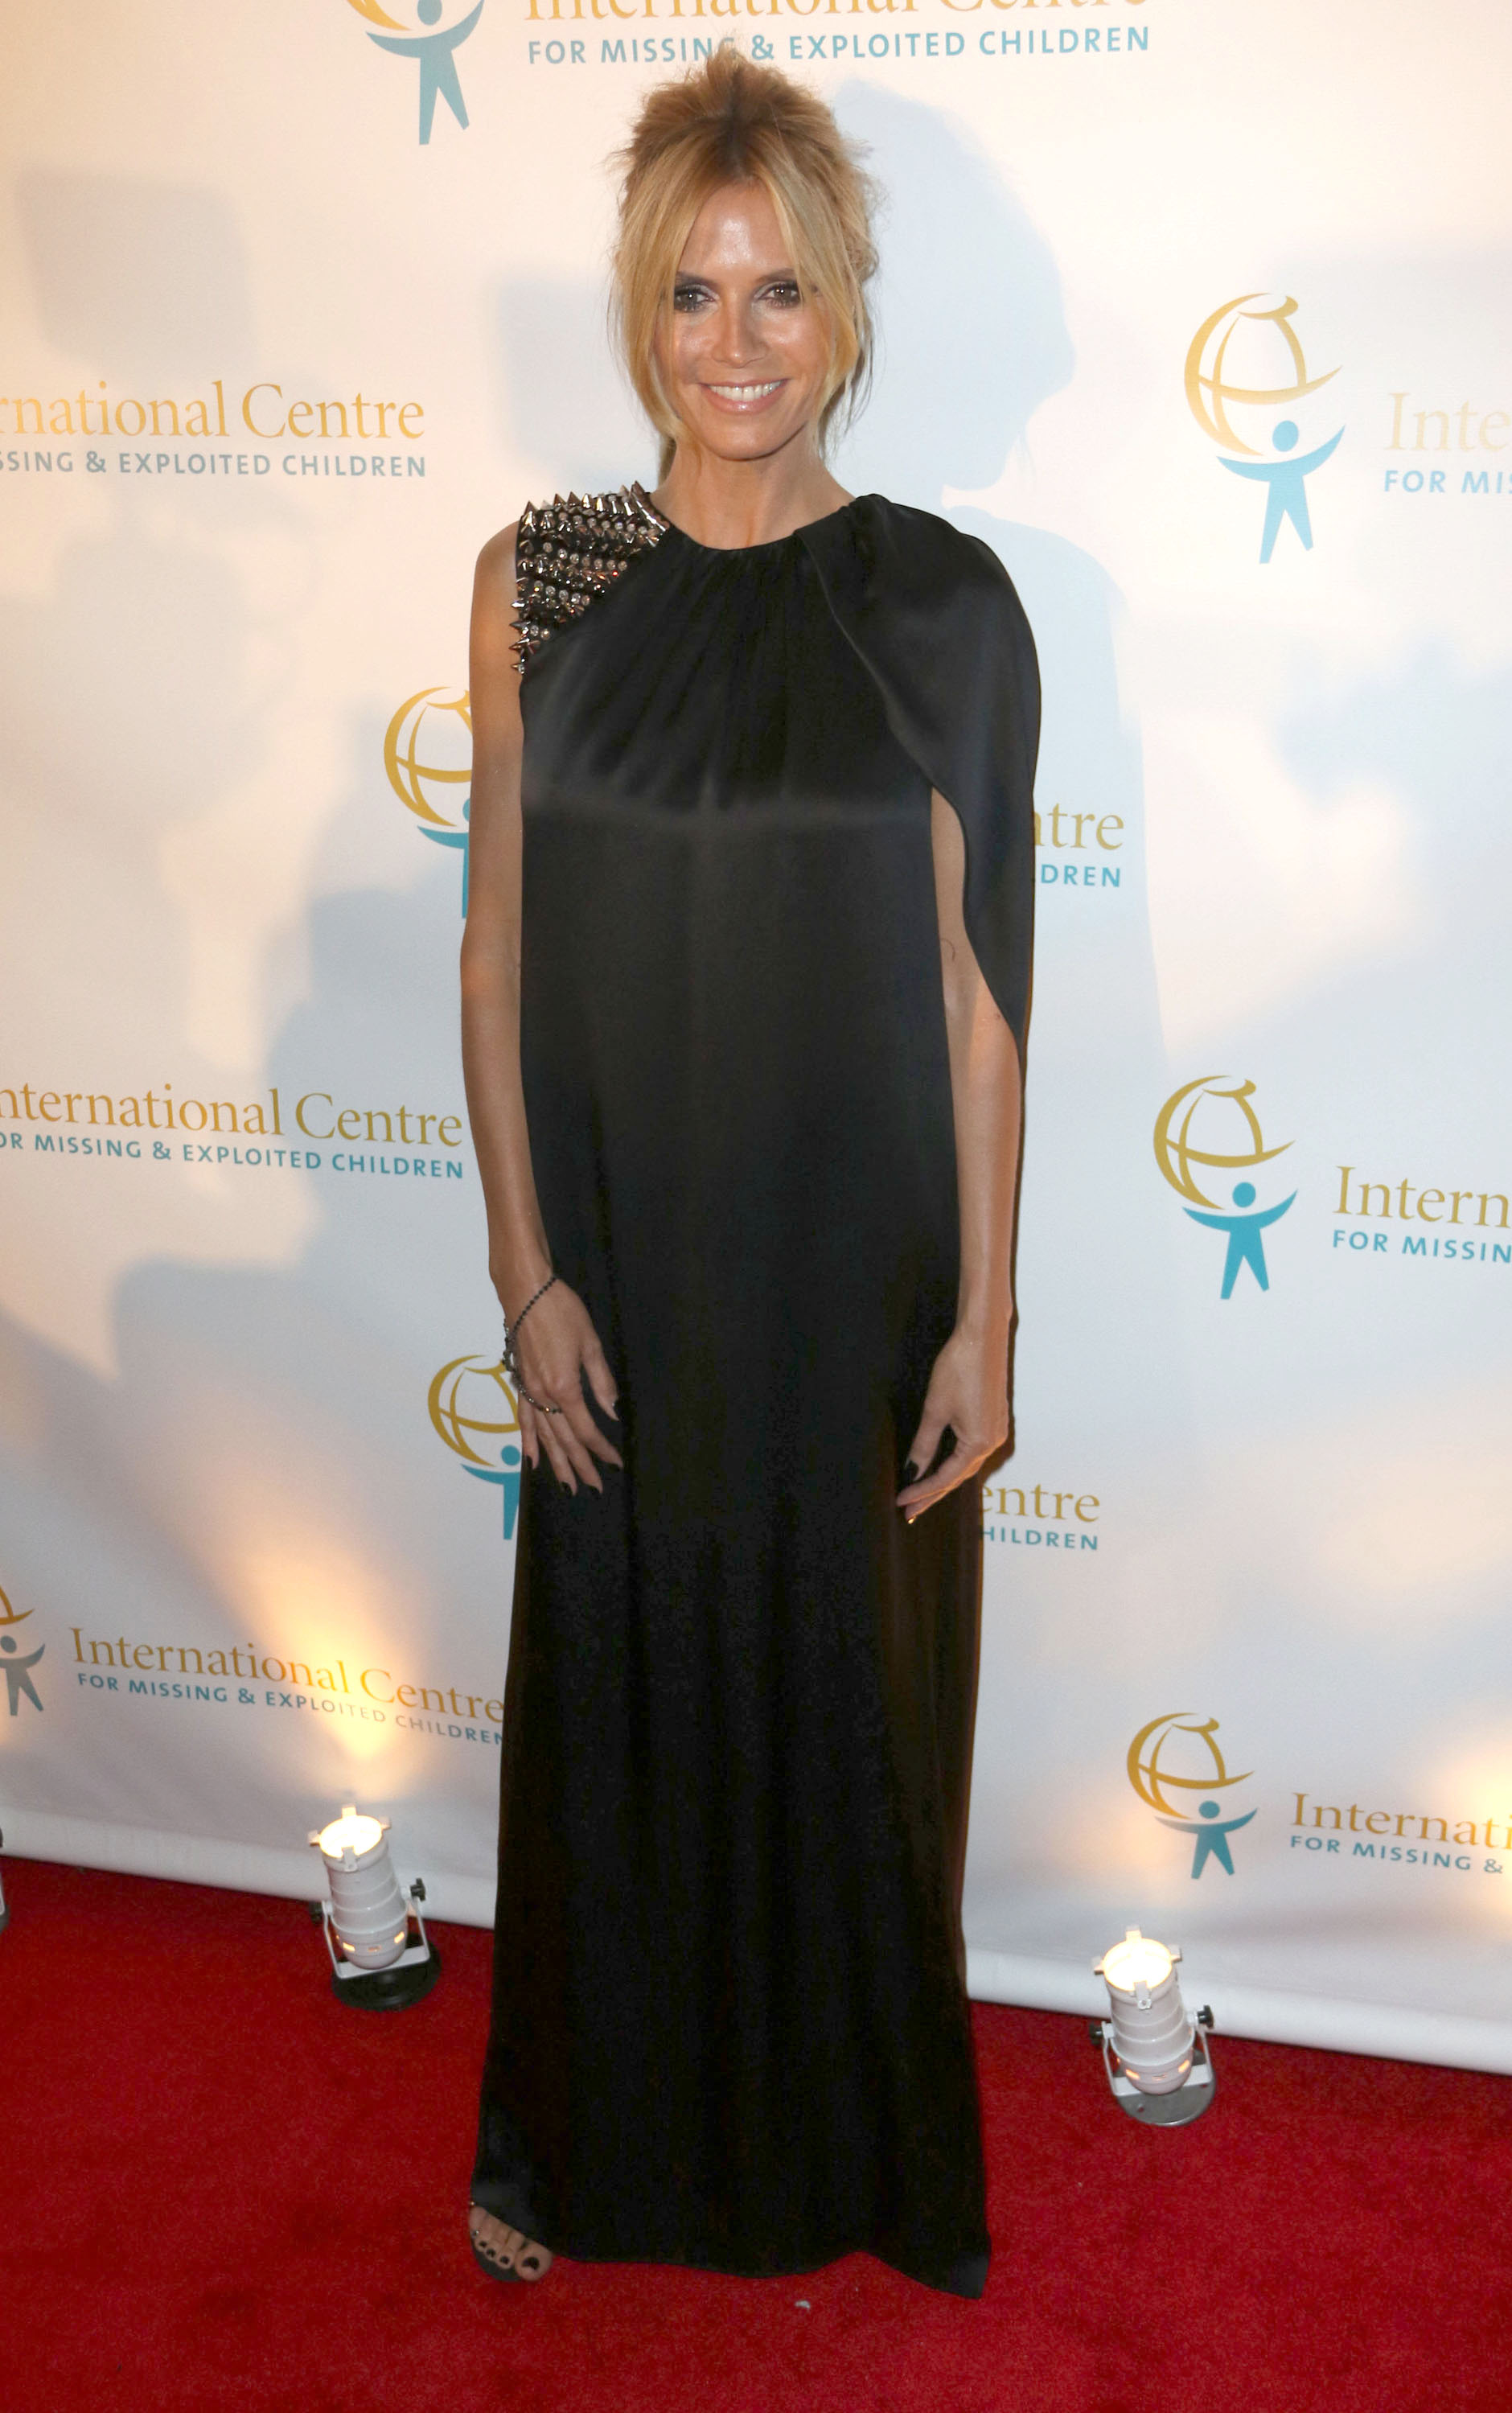 International Centre For Missing And Exploited Children's Inaugural Gala